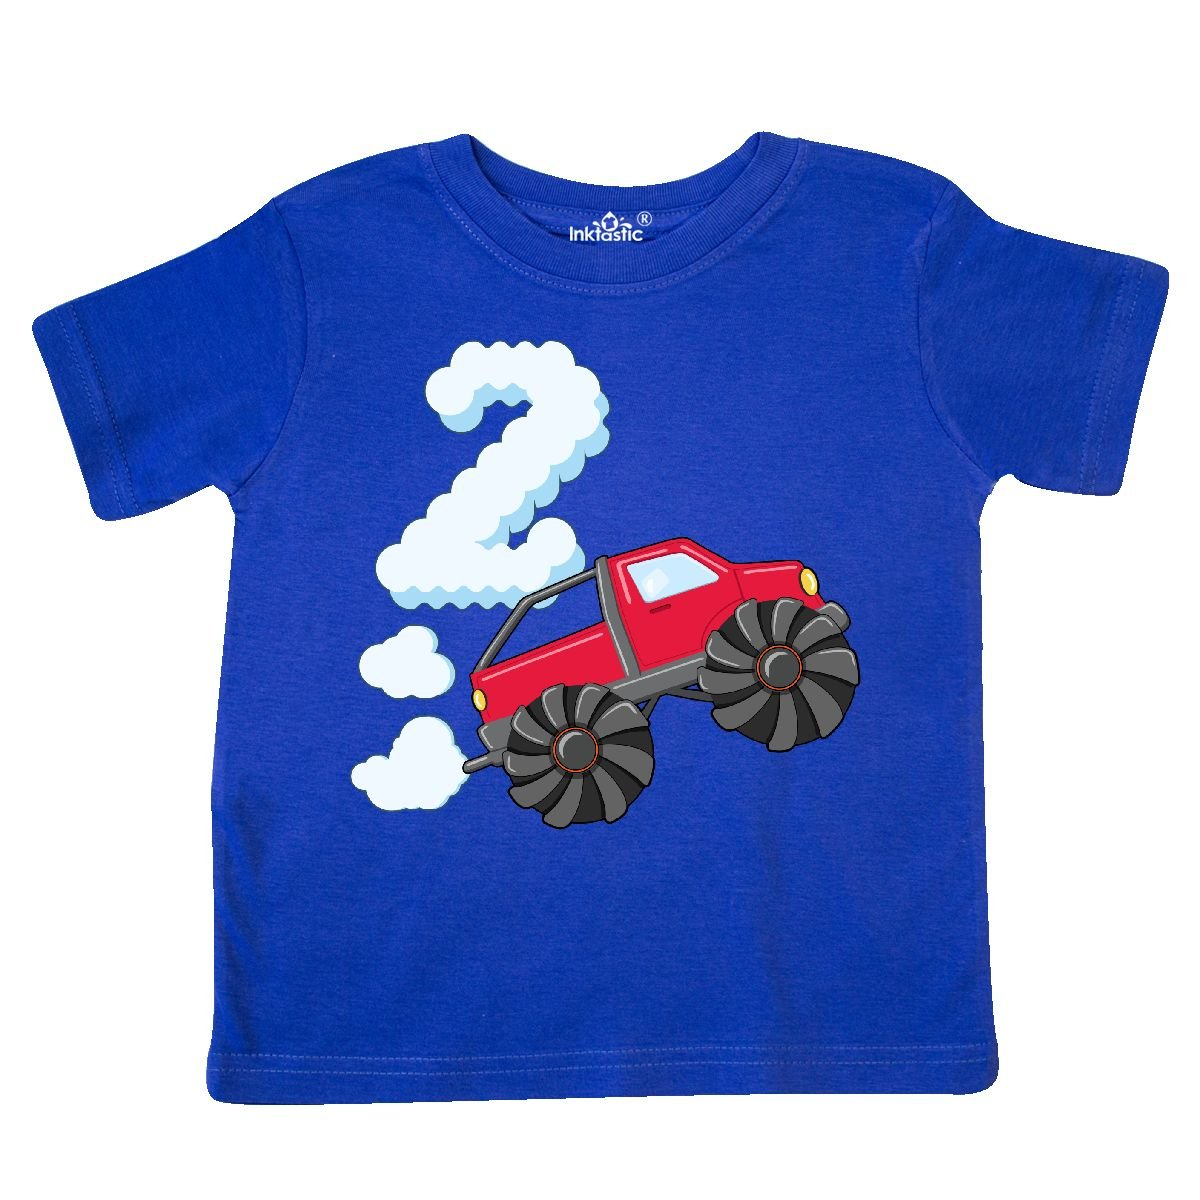 85f325729 Amazon.com: inktastic - 2nd Birthday Monster Truck Fun Toddler T-Shirt  2d3f8: Clothing